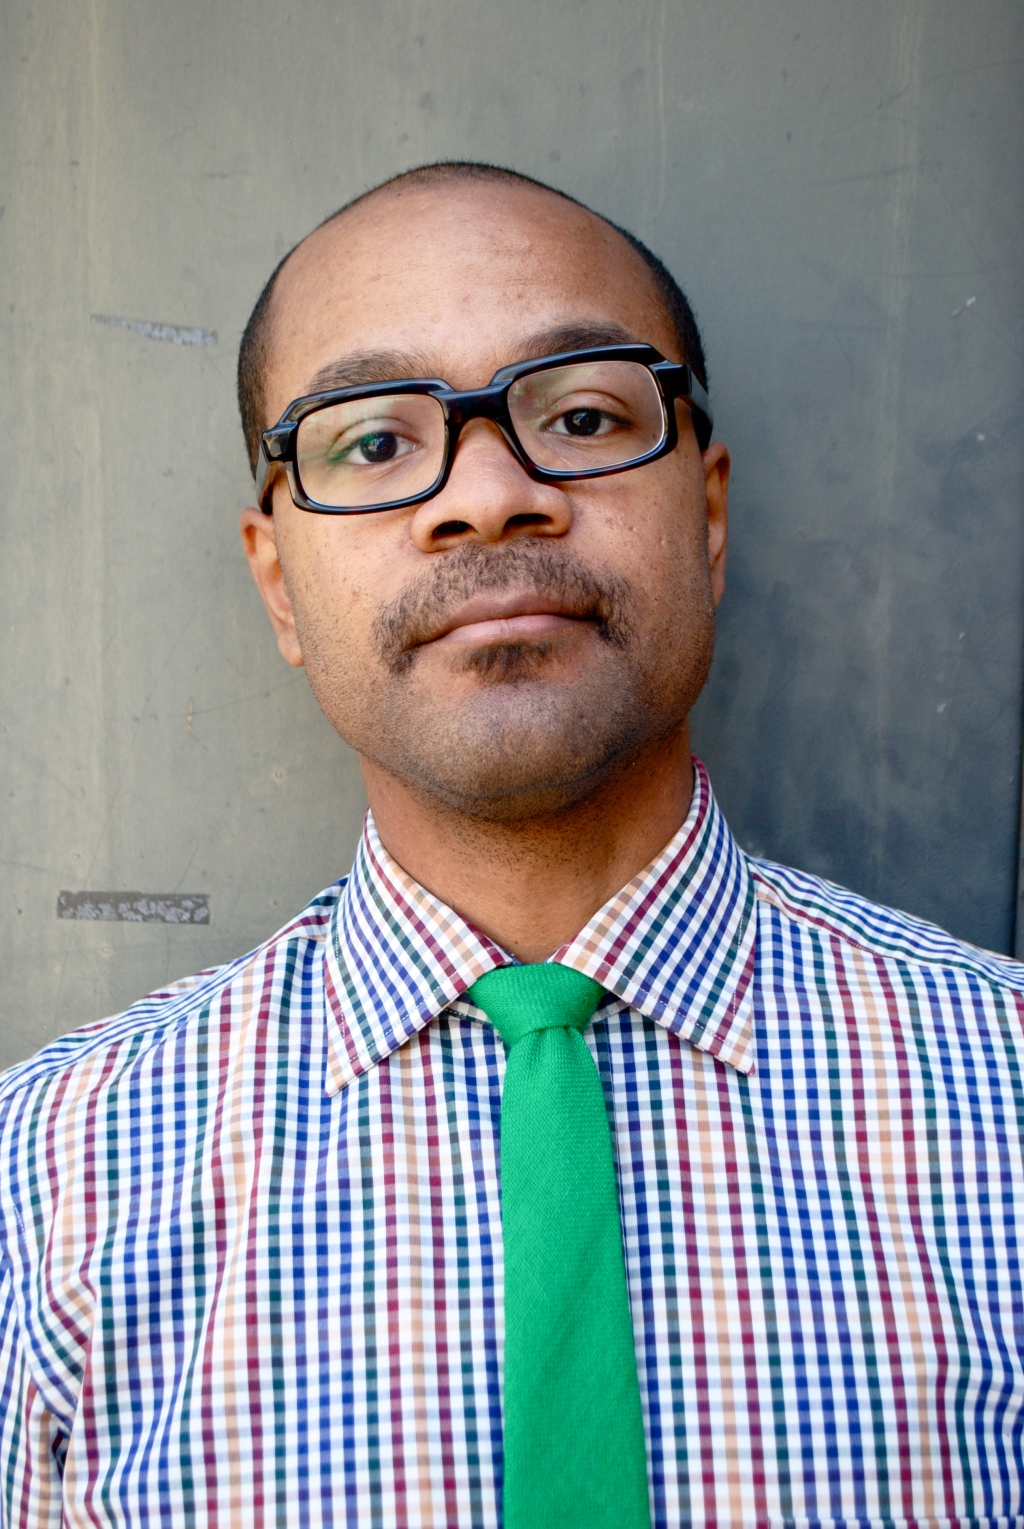 African American literature expert André Carrington, PhD, an assistant professor of English at Drexel